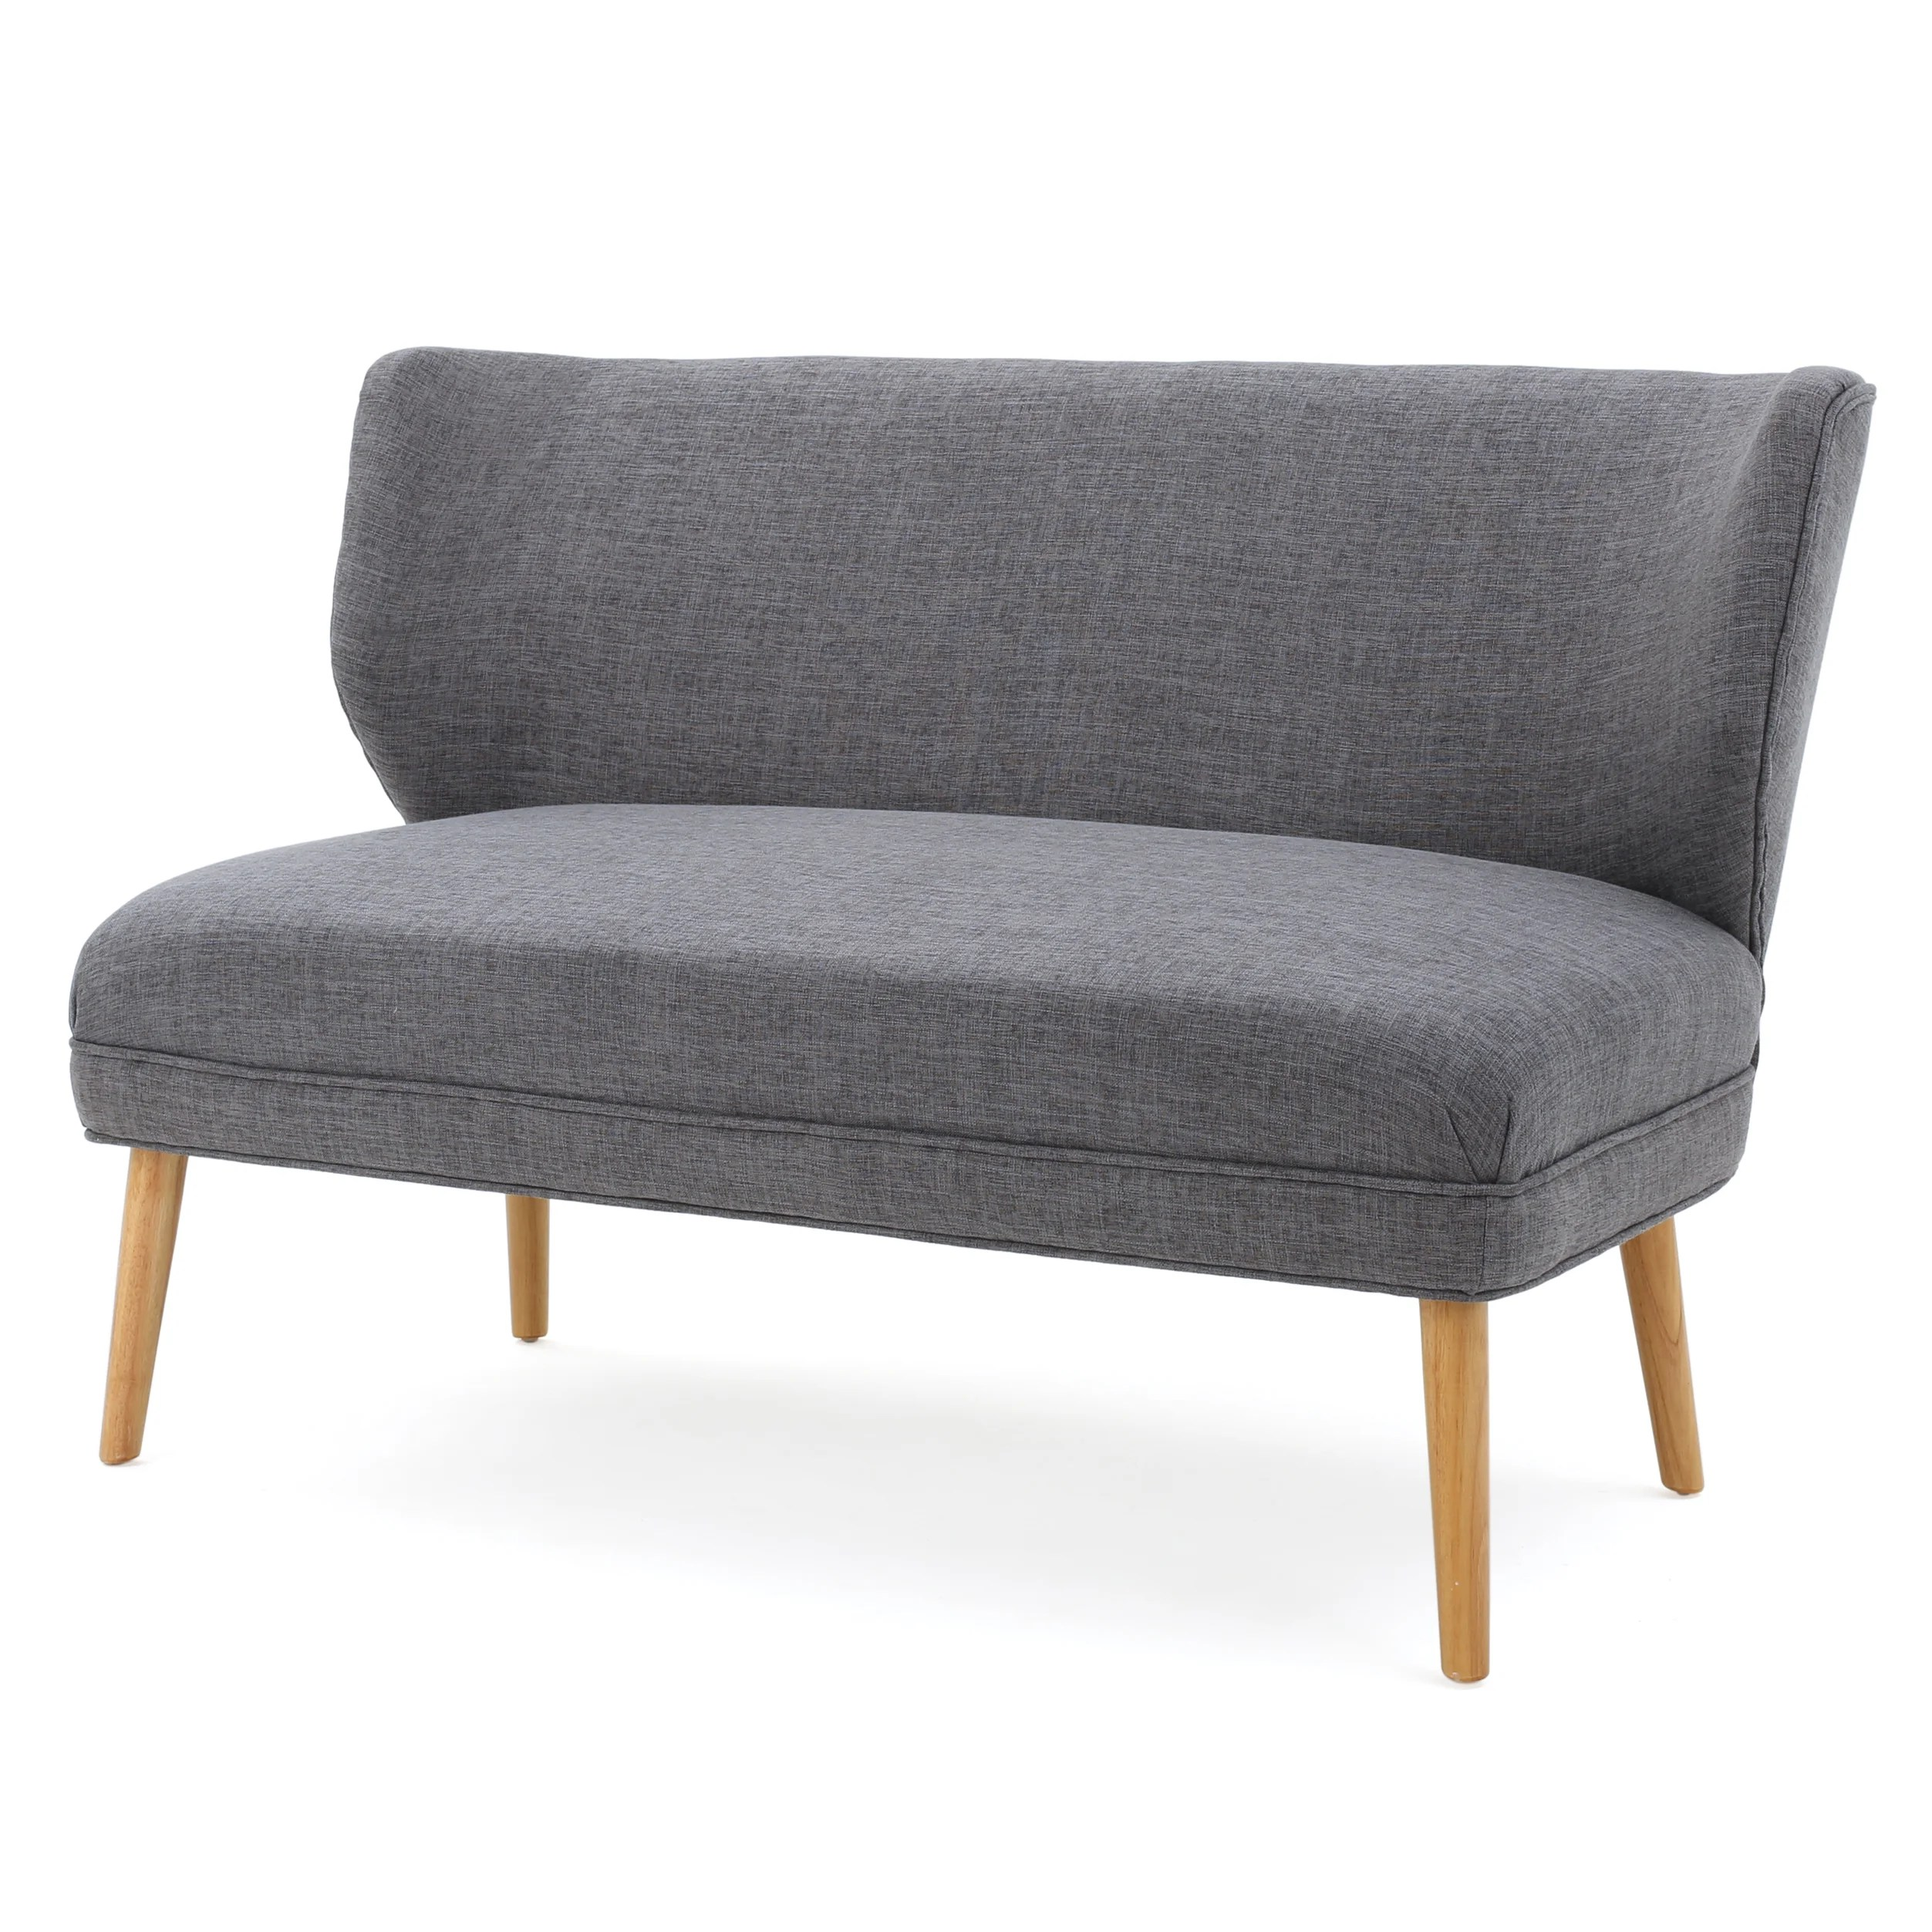 Settee Loveseat Noble House Ardine Mid Century Modern Fabric Loveseat Sofa